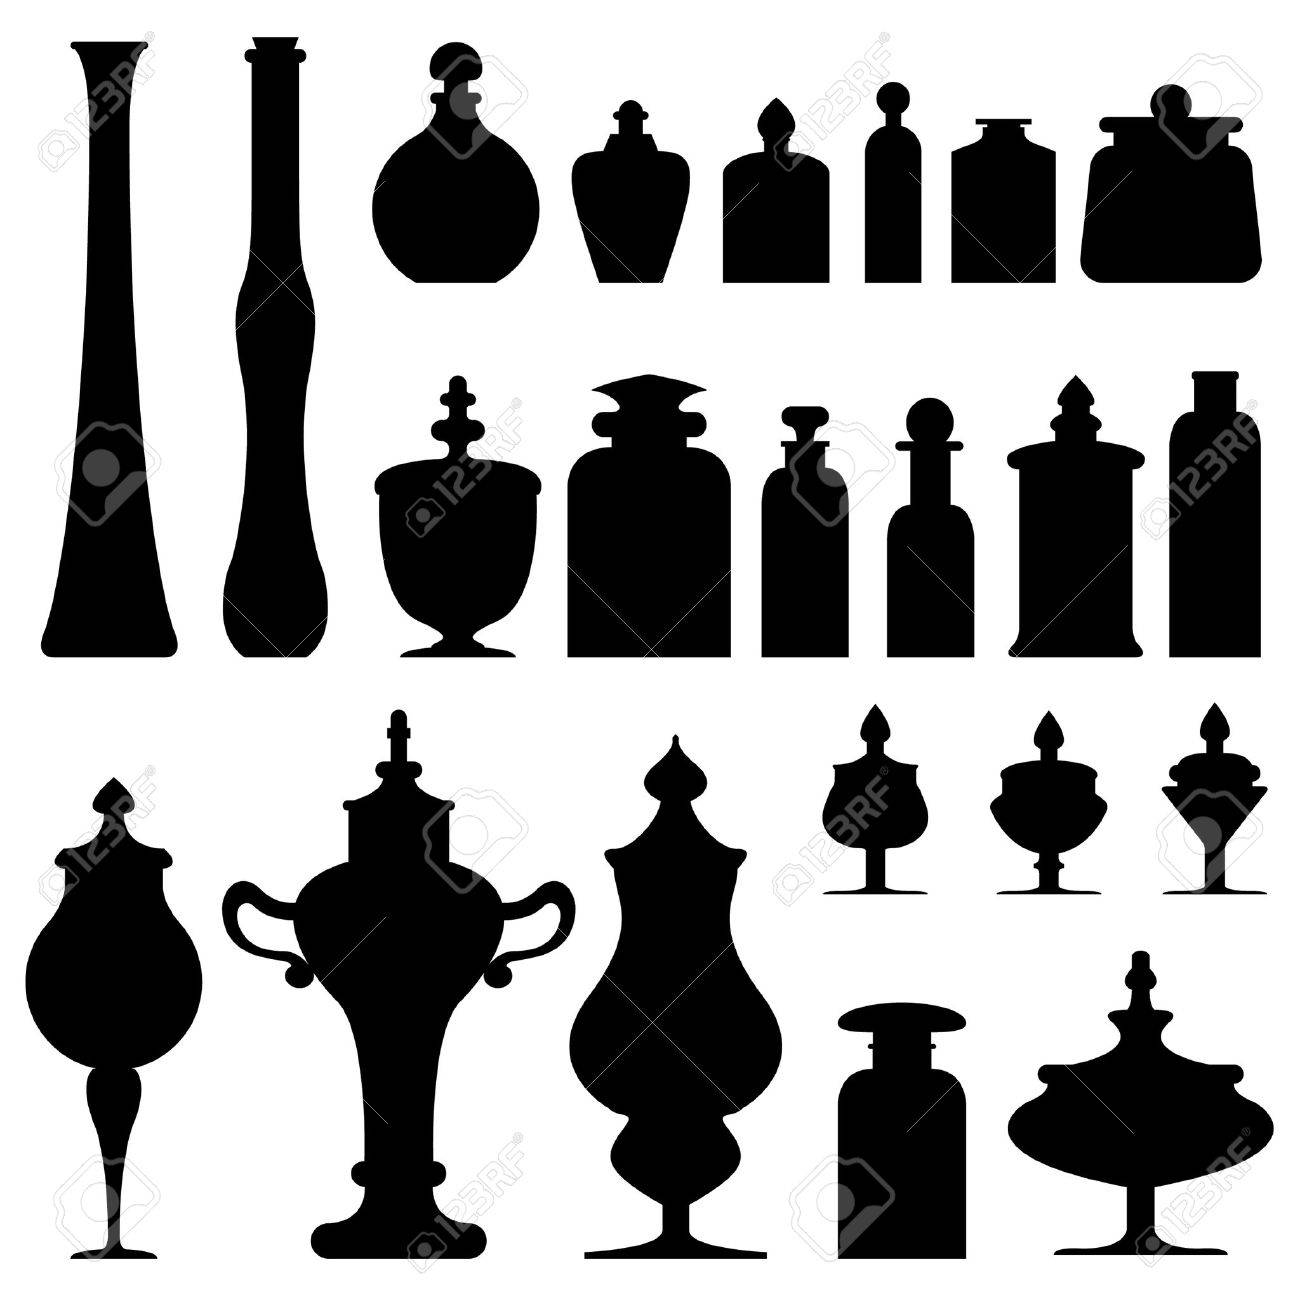 Antique vases, bottles, urns and jars from an apothecary, herbalist, or tea shop - vector silhouette set Stock Vector - 4695131